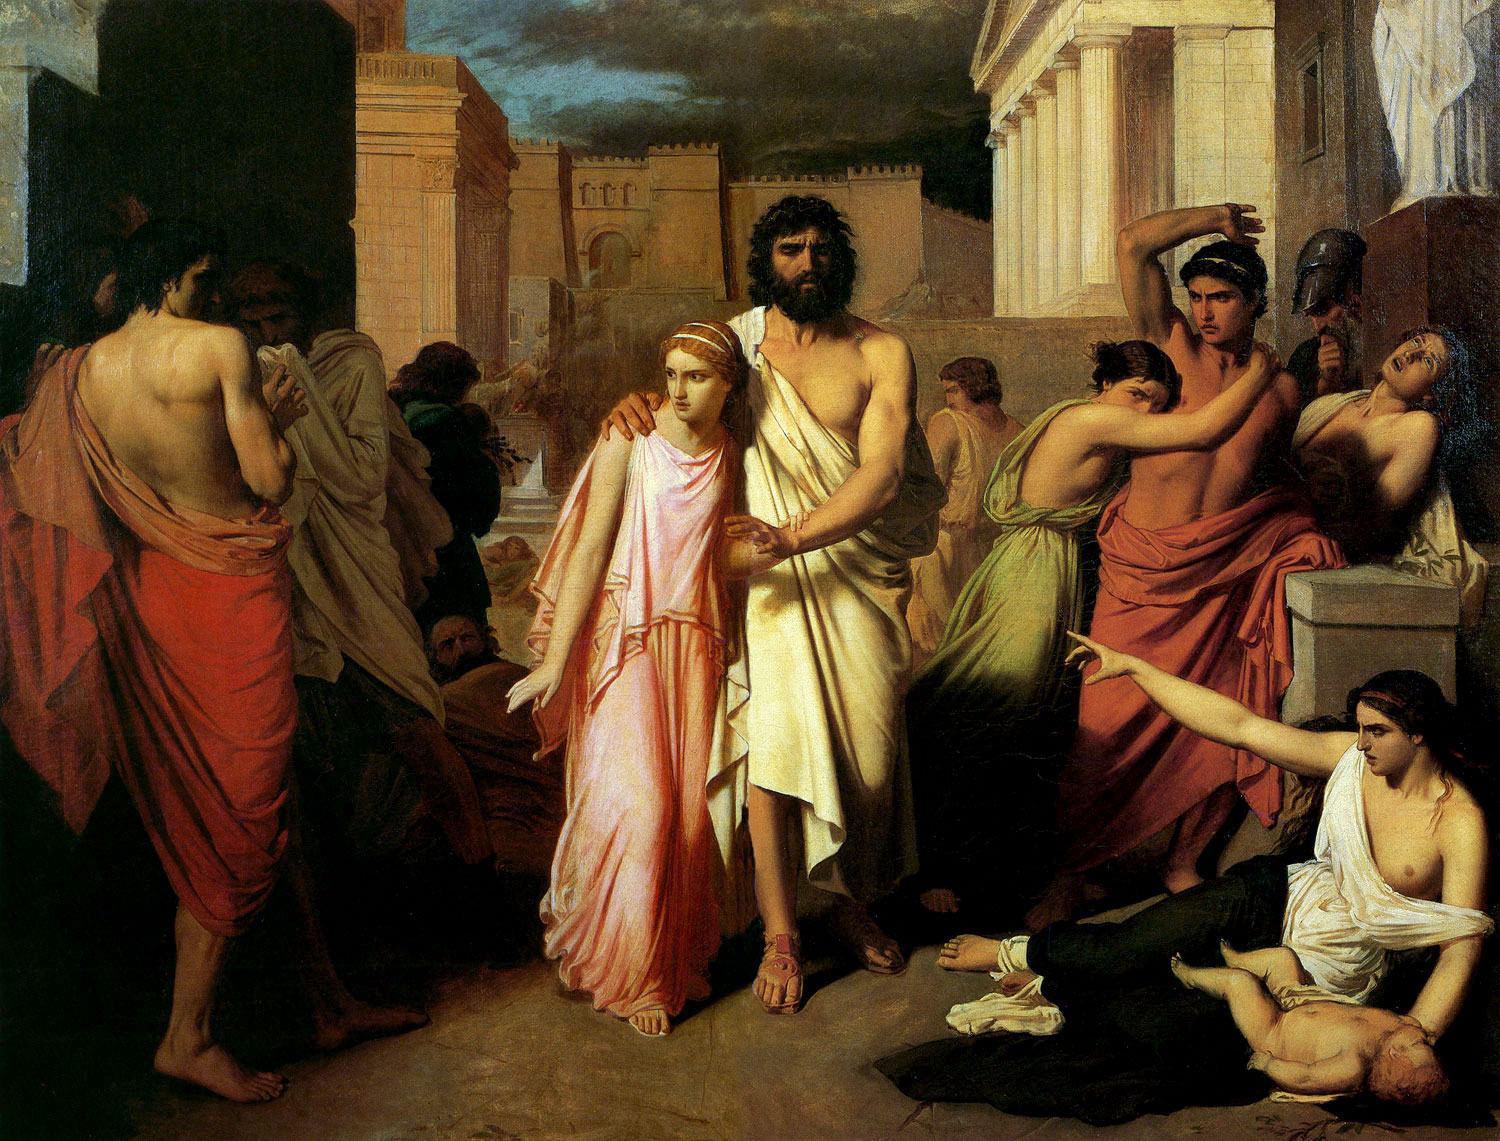 a look at the man of admirable feats oedipus in the tragedy oedipus the king Study guides get your head around tough topics at a-level with our teacher written guides learn more.